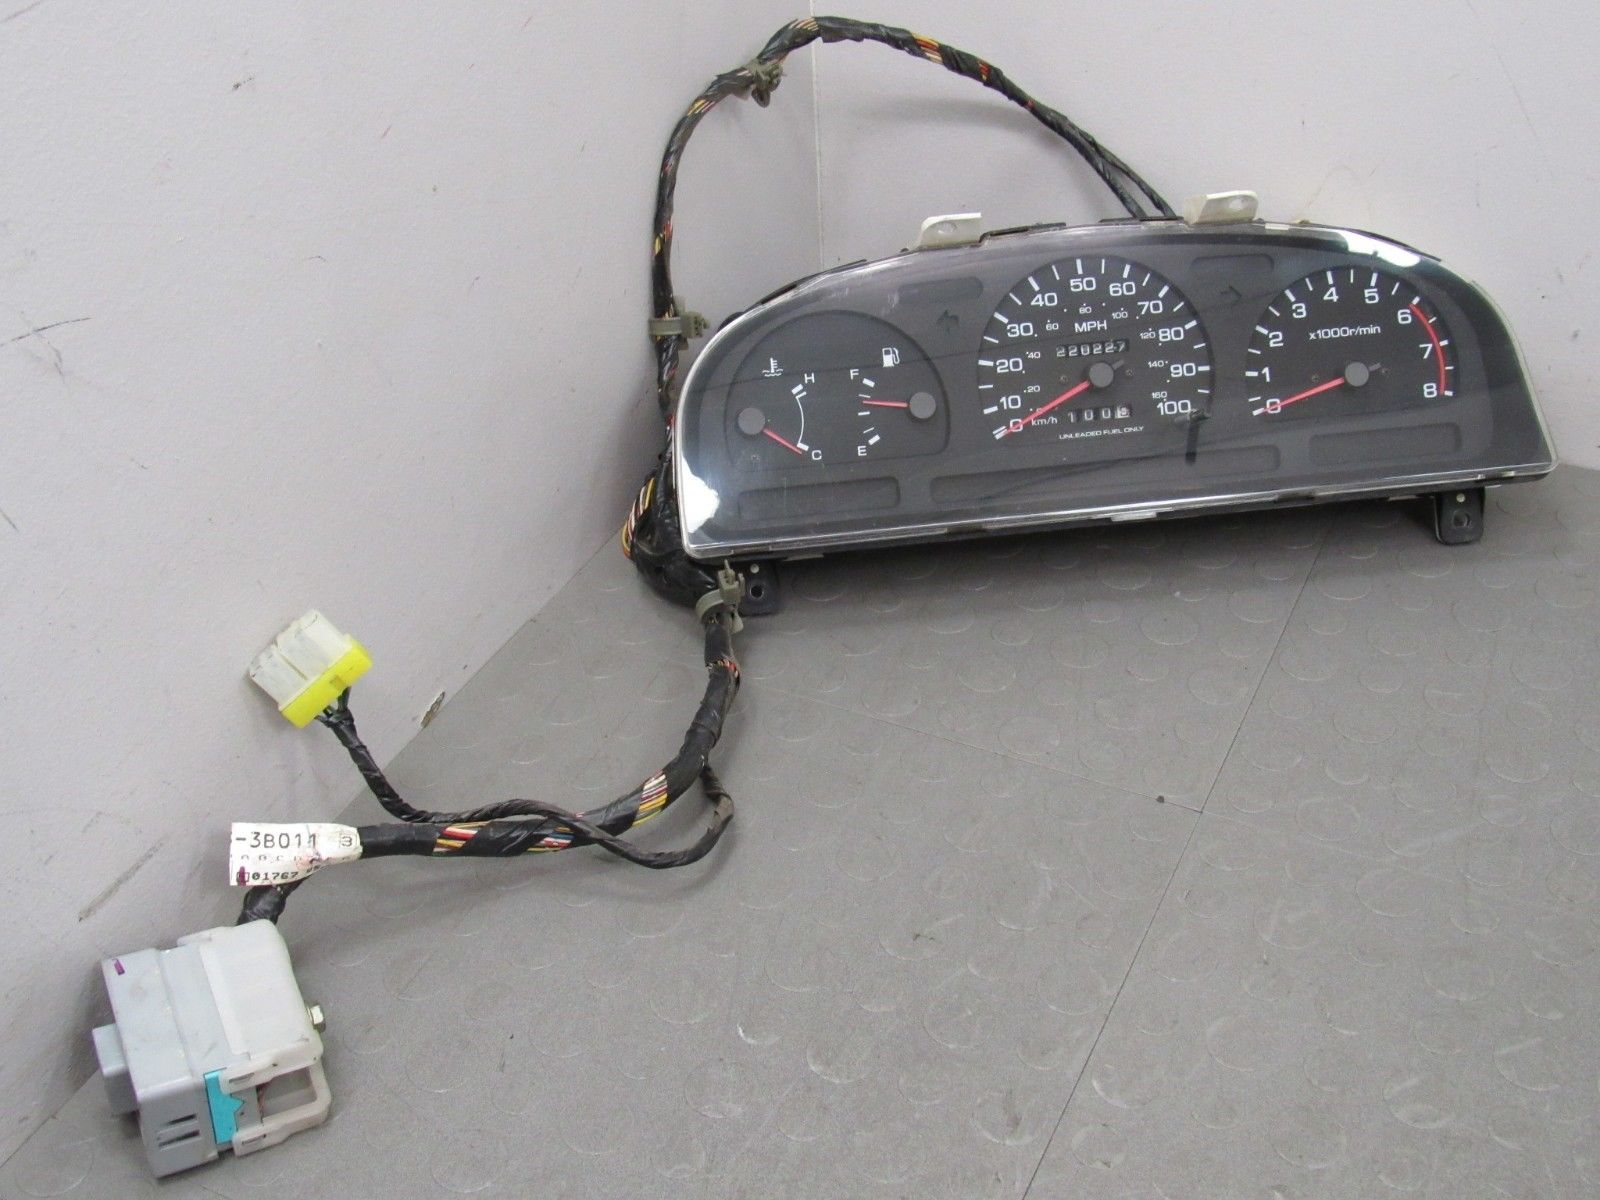 94 97 Nissan Pickup Truck Hard Body Instrument Gauge Cluster Tach Wiring Harness 220227